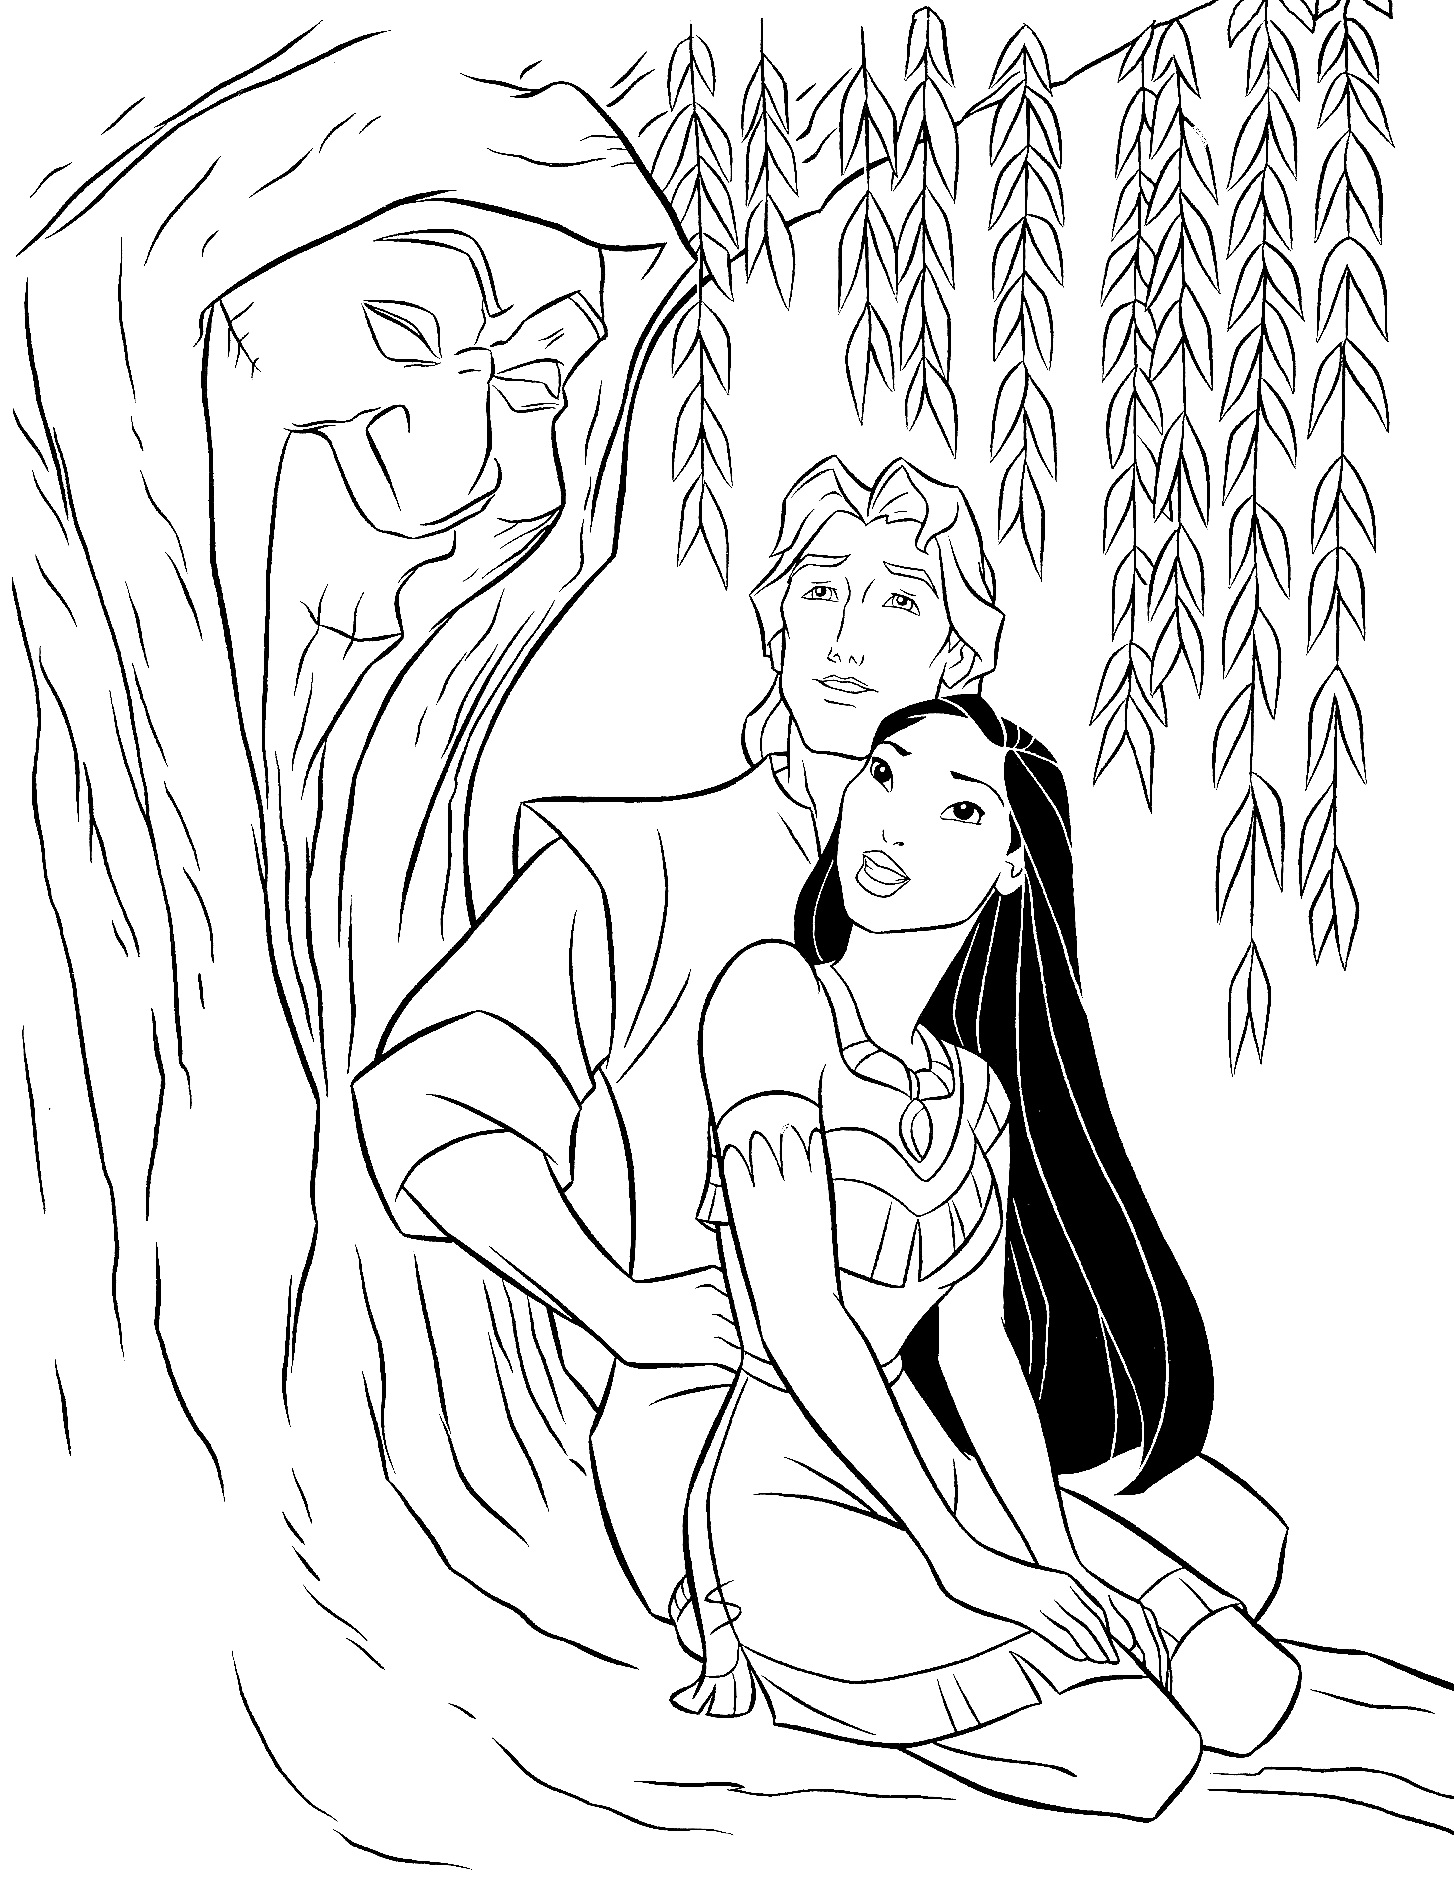 Simple free Pocahontas coloring page to print and color